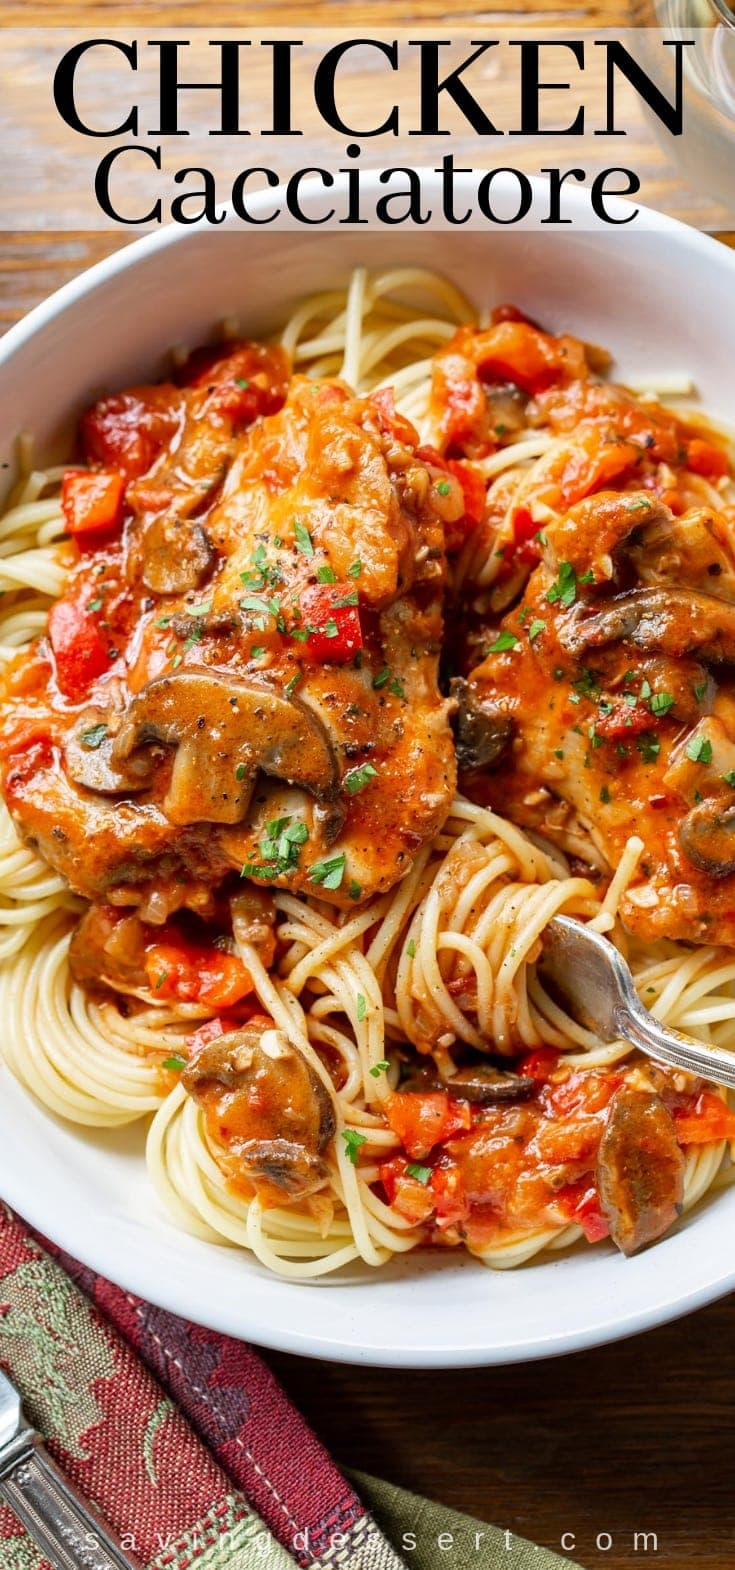 A bowl of chicken cacciatore with mushrooms over spaghetti